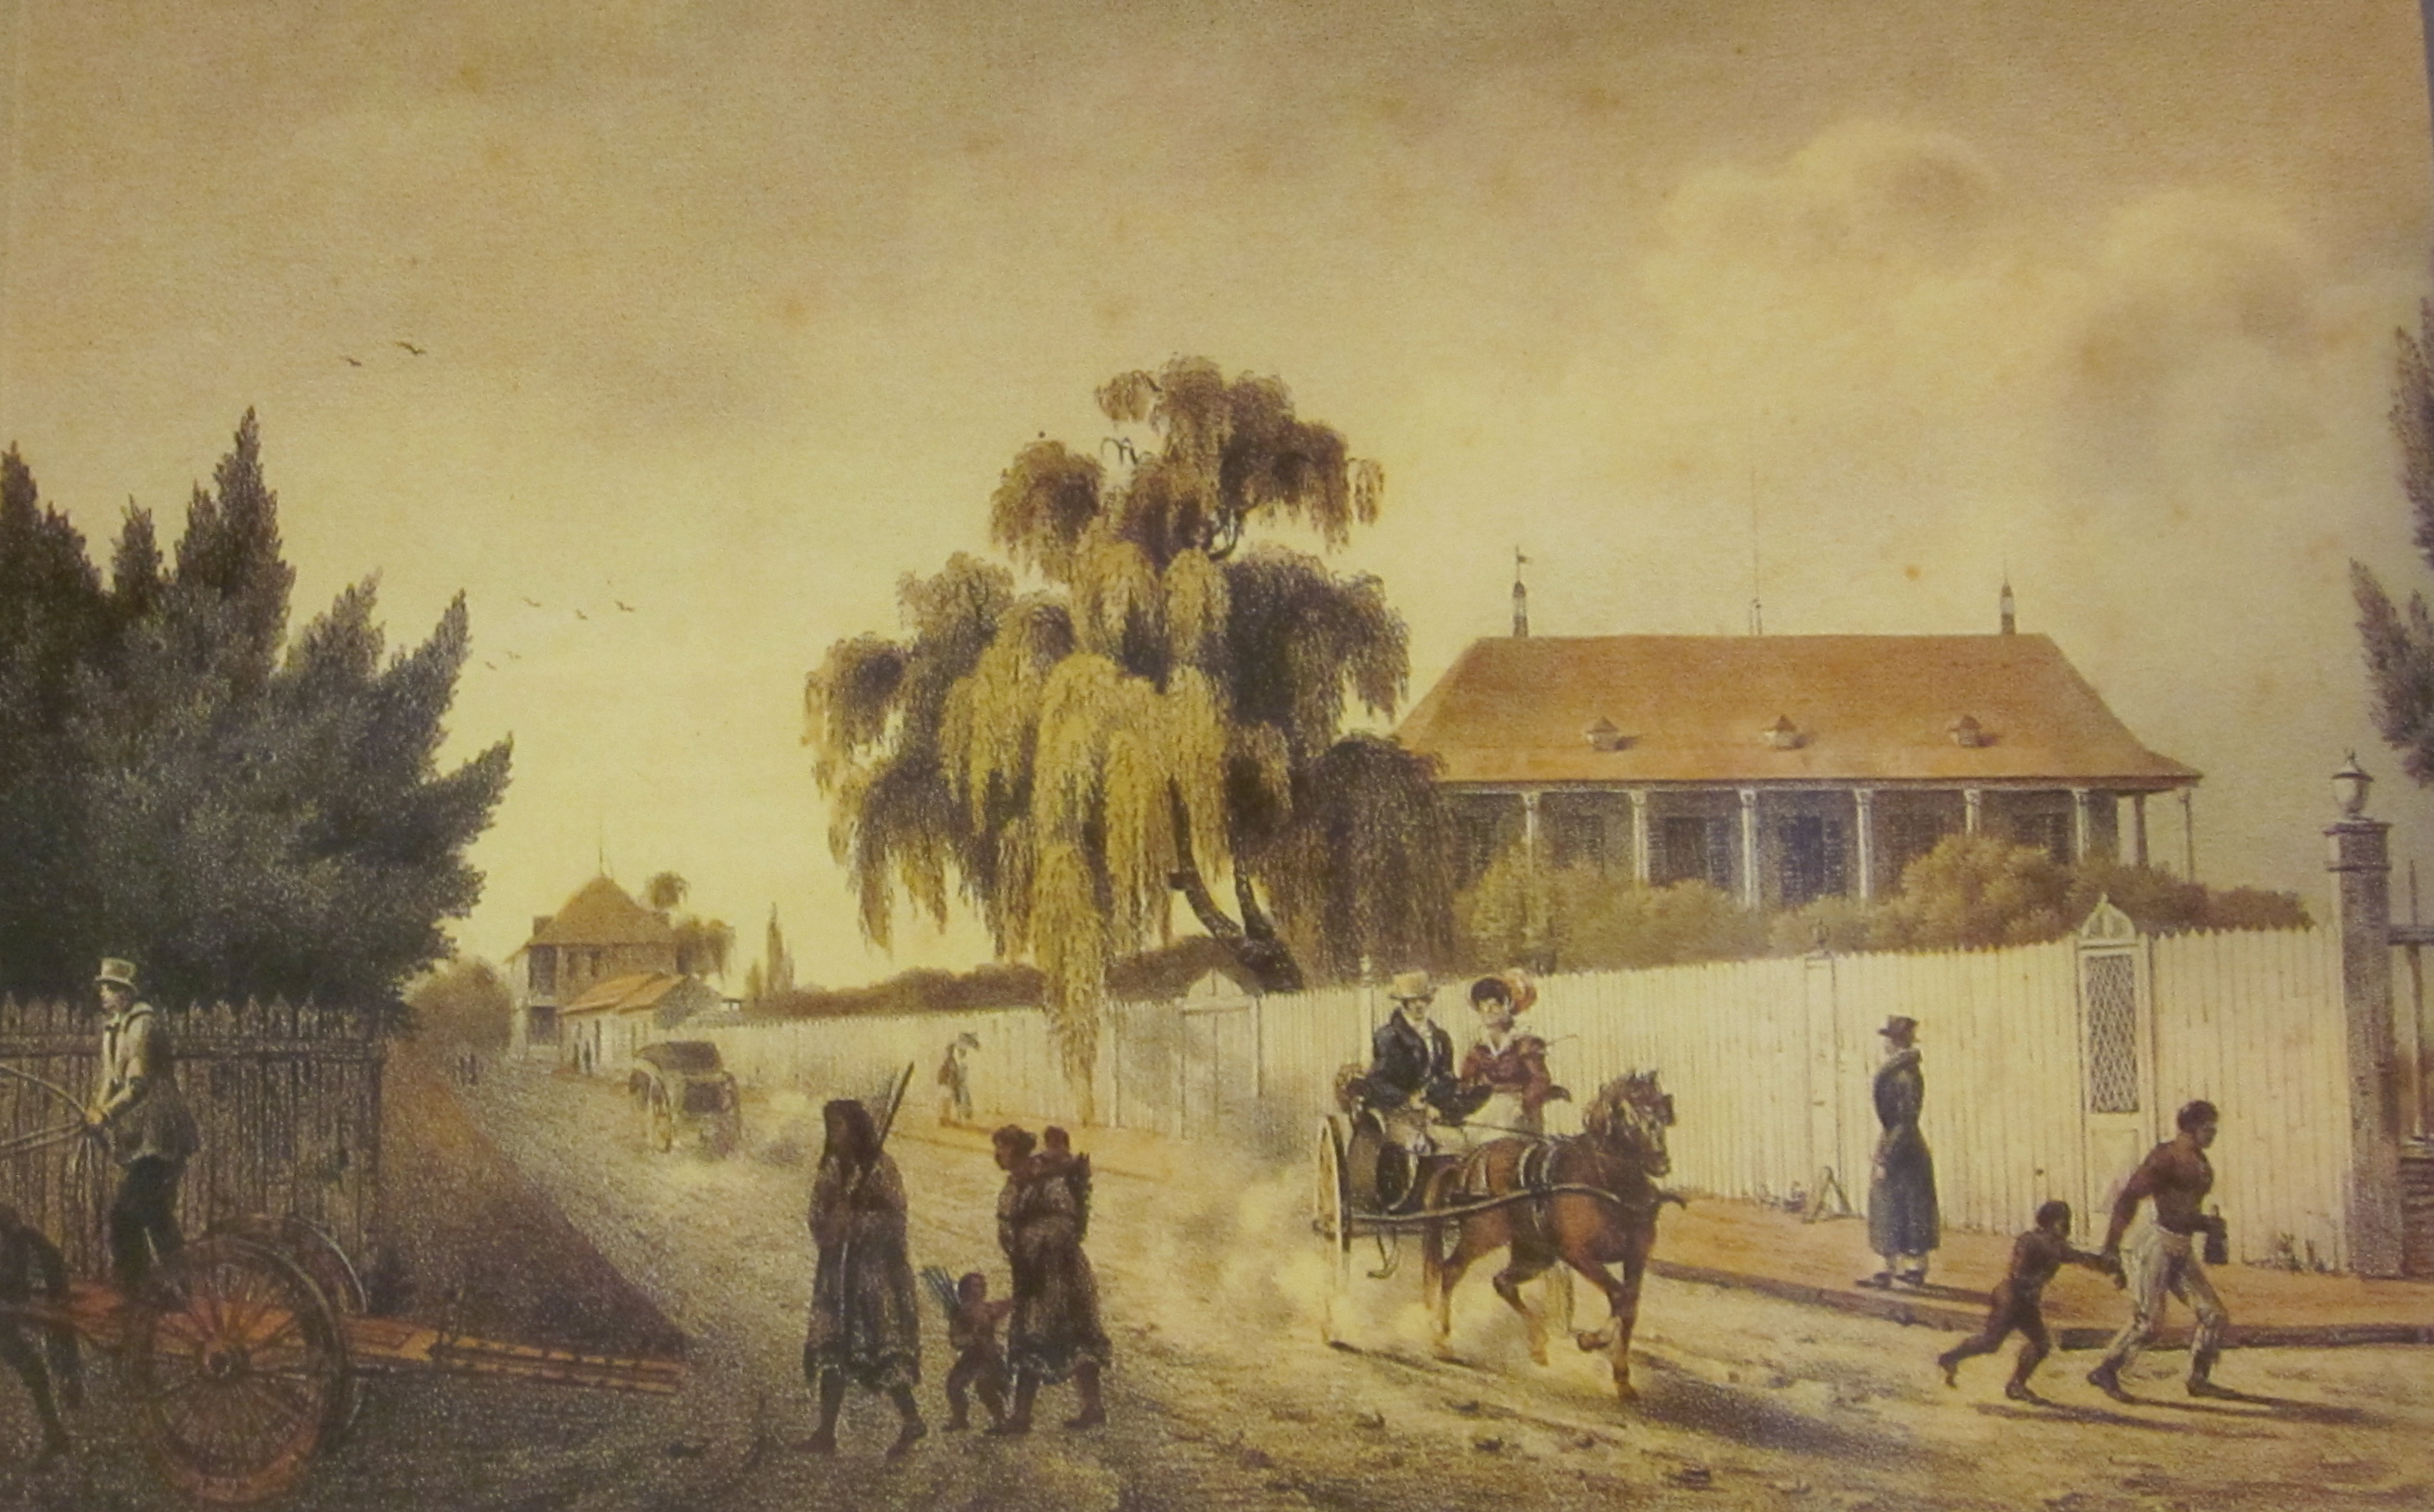 File:New Orleans Faubourg Marigny 1821.jpg